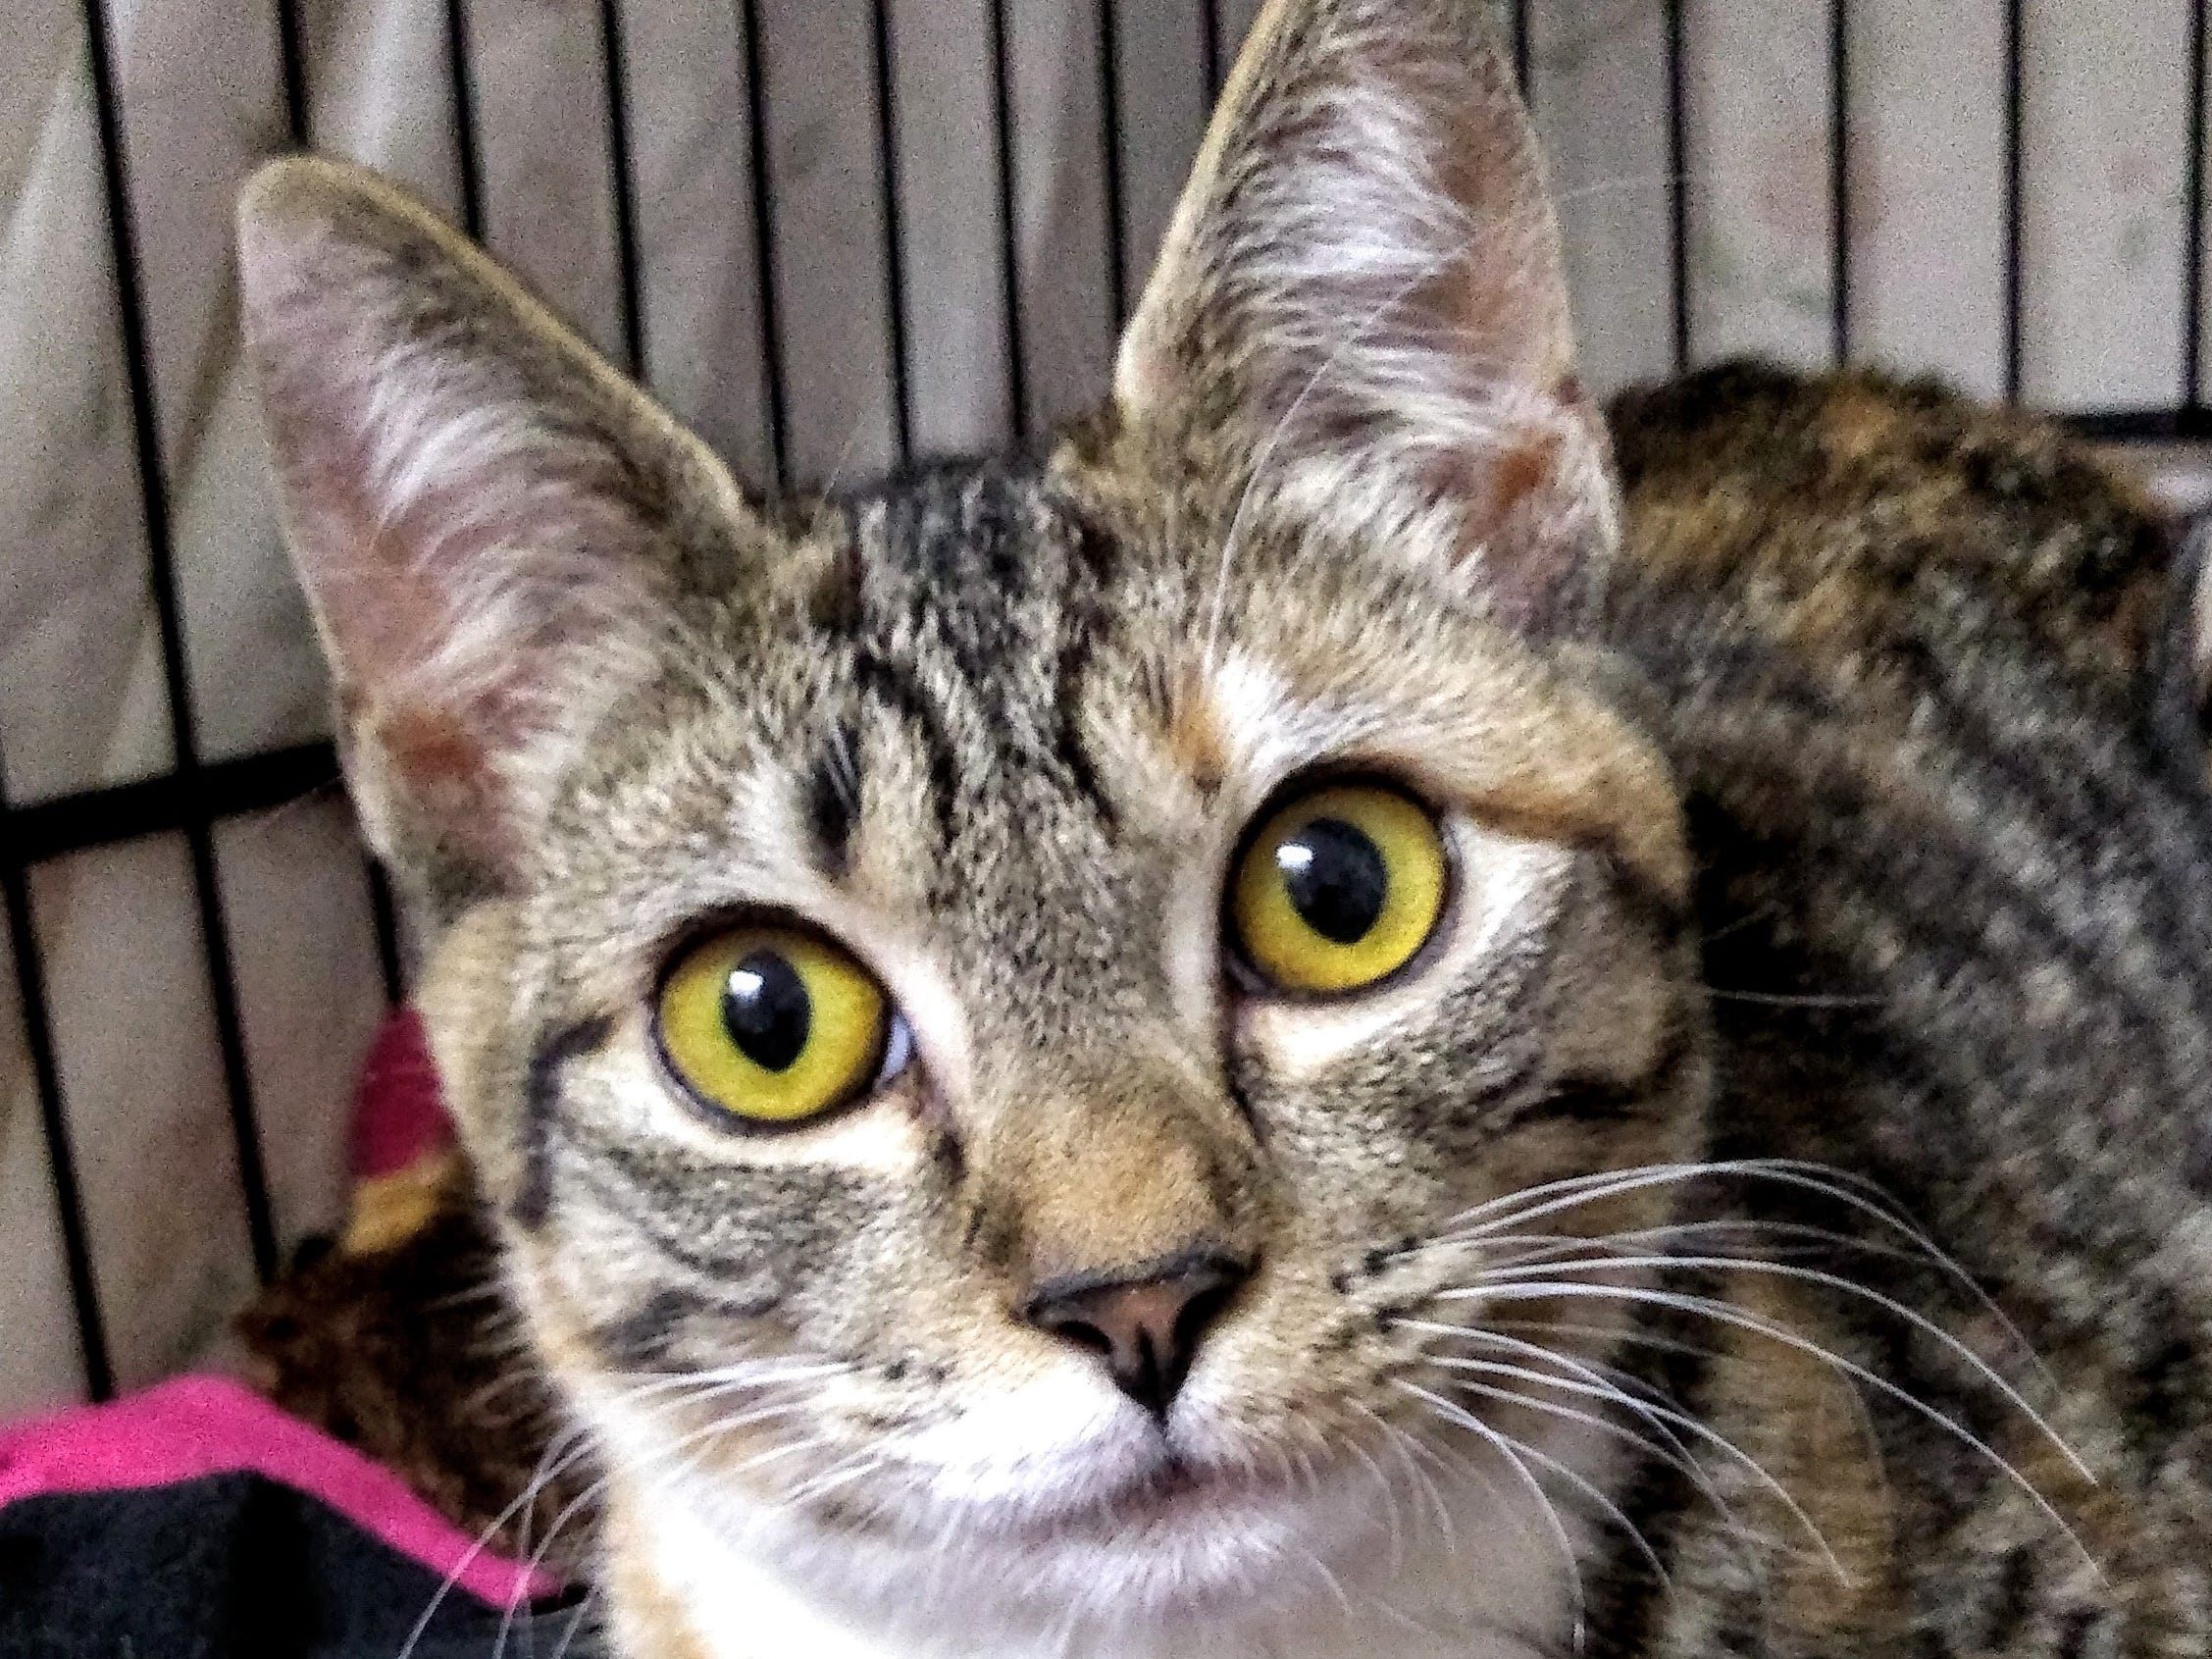 Lucy is a lovely 5-month-old Torbie who is a real lover. She is friendly, mellow and affectionate. Lucy will do well with respectful children of all ages. She is not fond of other cats and must live indoors. For more information, visit www.sfof.org or call 503-362-5611.